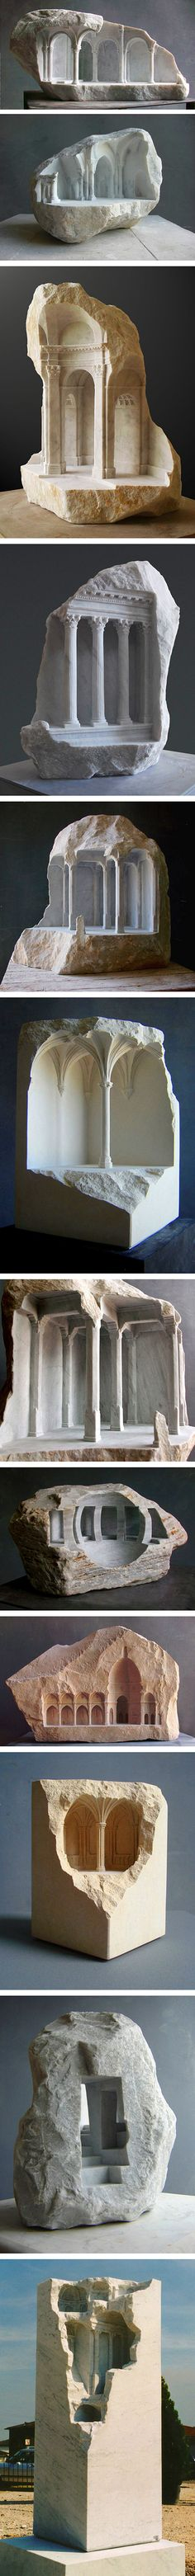 Marble Sculptures by Matthew Simmonds